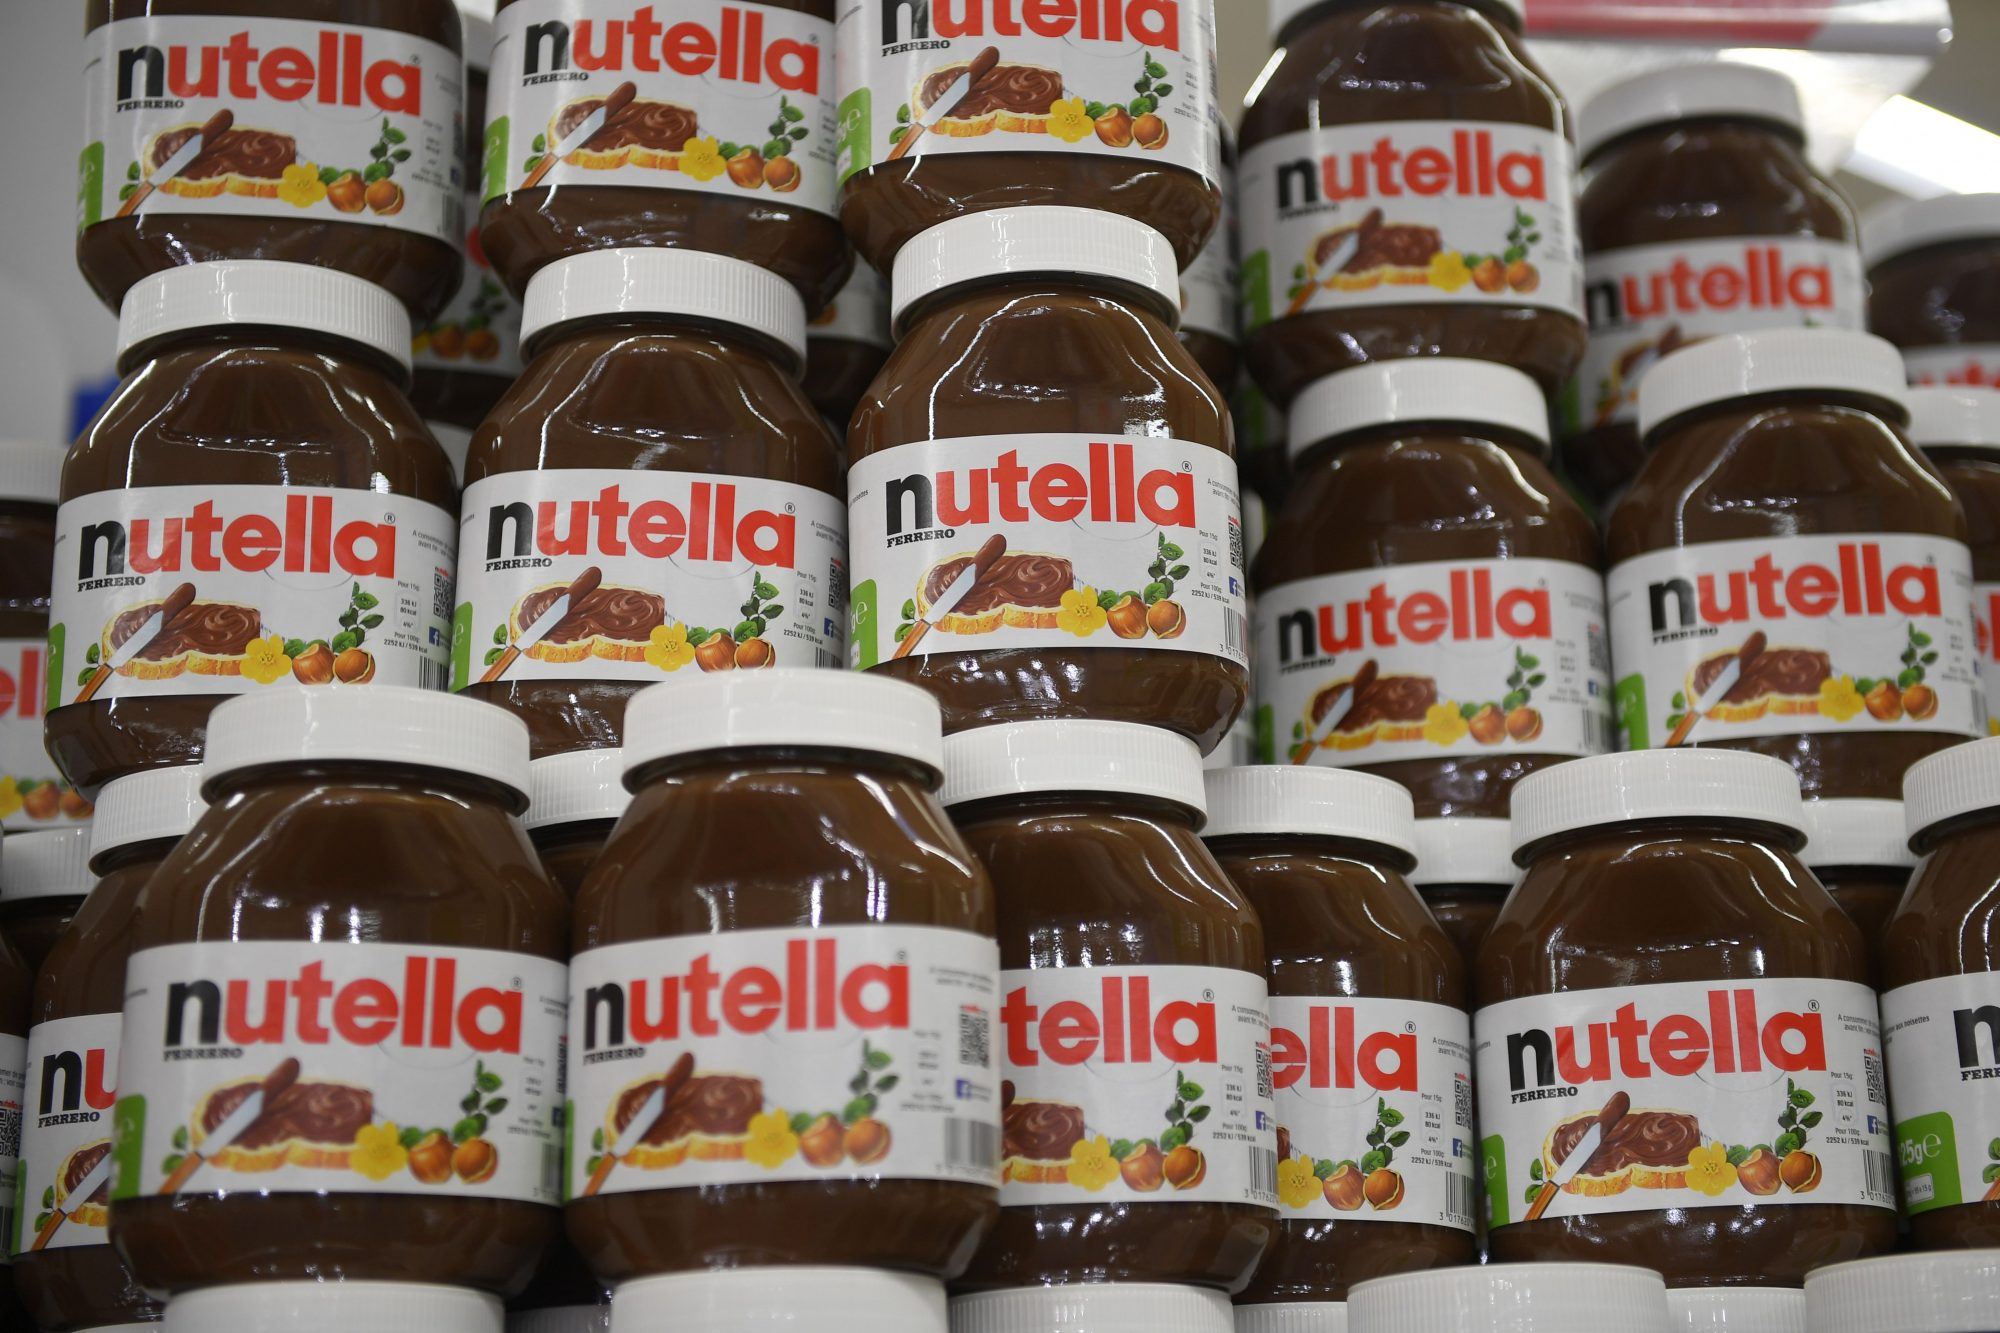 Costco Just Introduced Its Own Version of Nutella